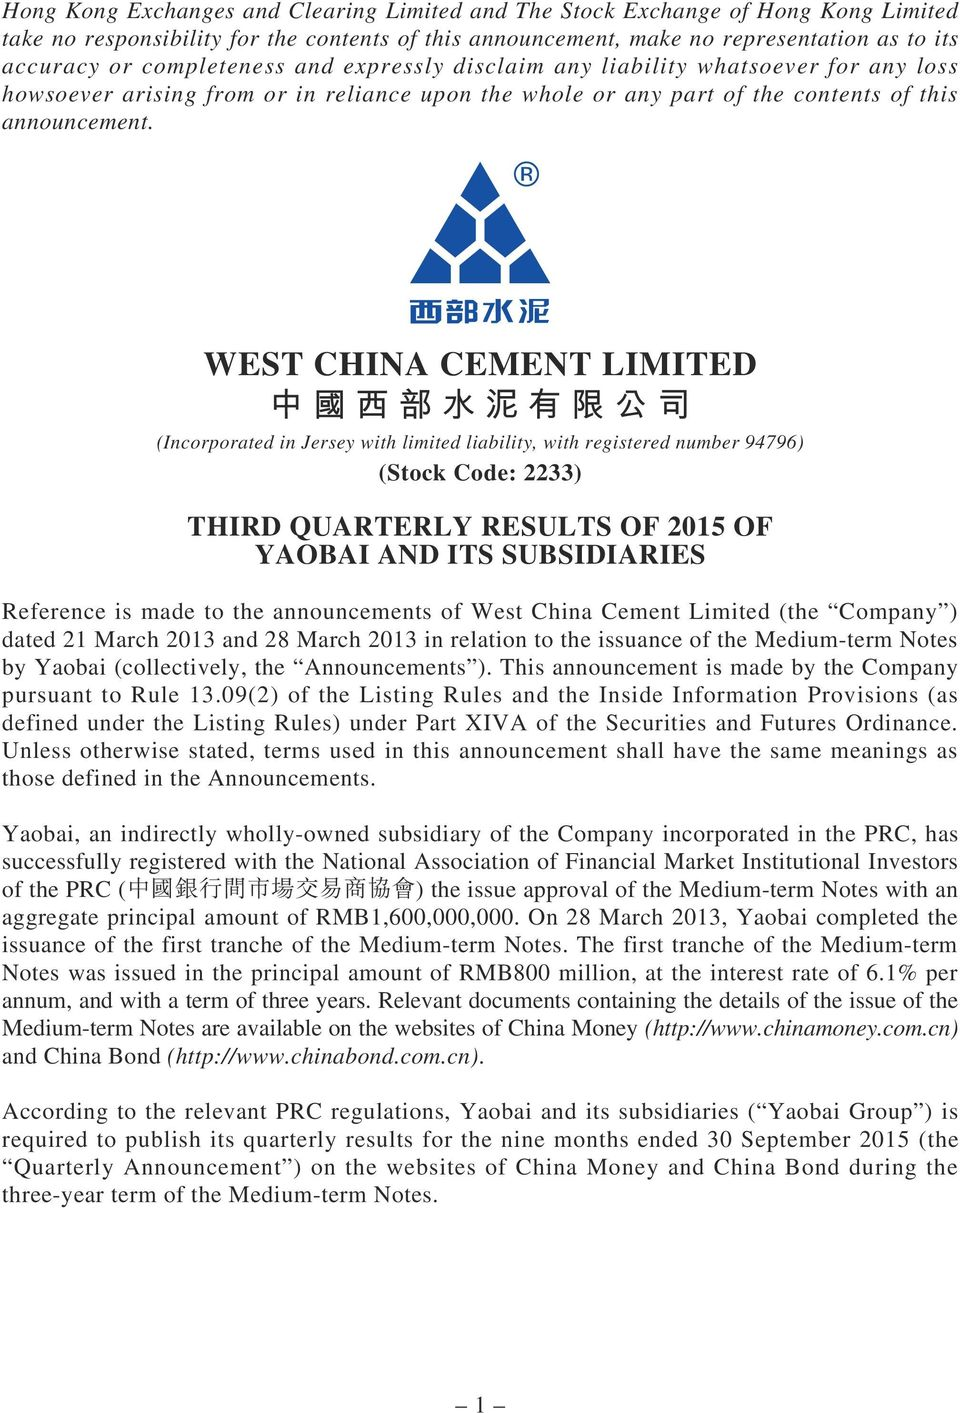 WEST CHINA CEMENT LIMITED (Incorporated in Jersey with limited liability, with registered number 94796) (Stock Code: 2233) THIRD QUARTERLY RESULTS OF OF YAOBAI AND ITS SUBSIDIARIES Reference is made